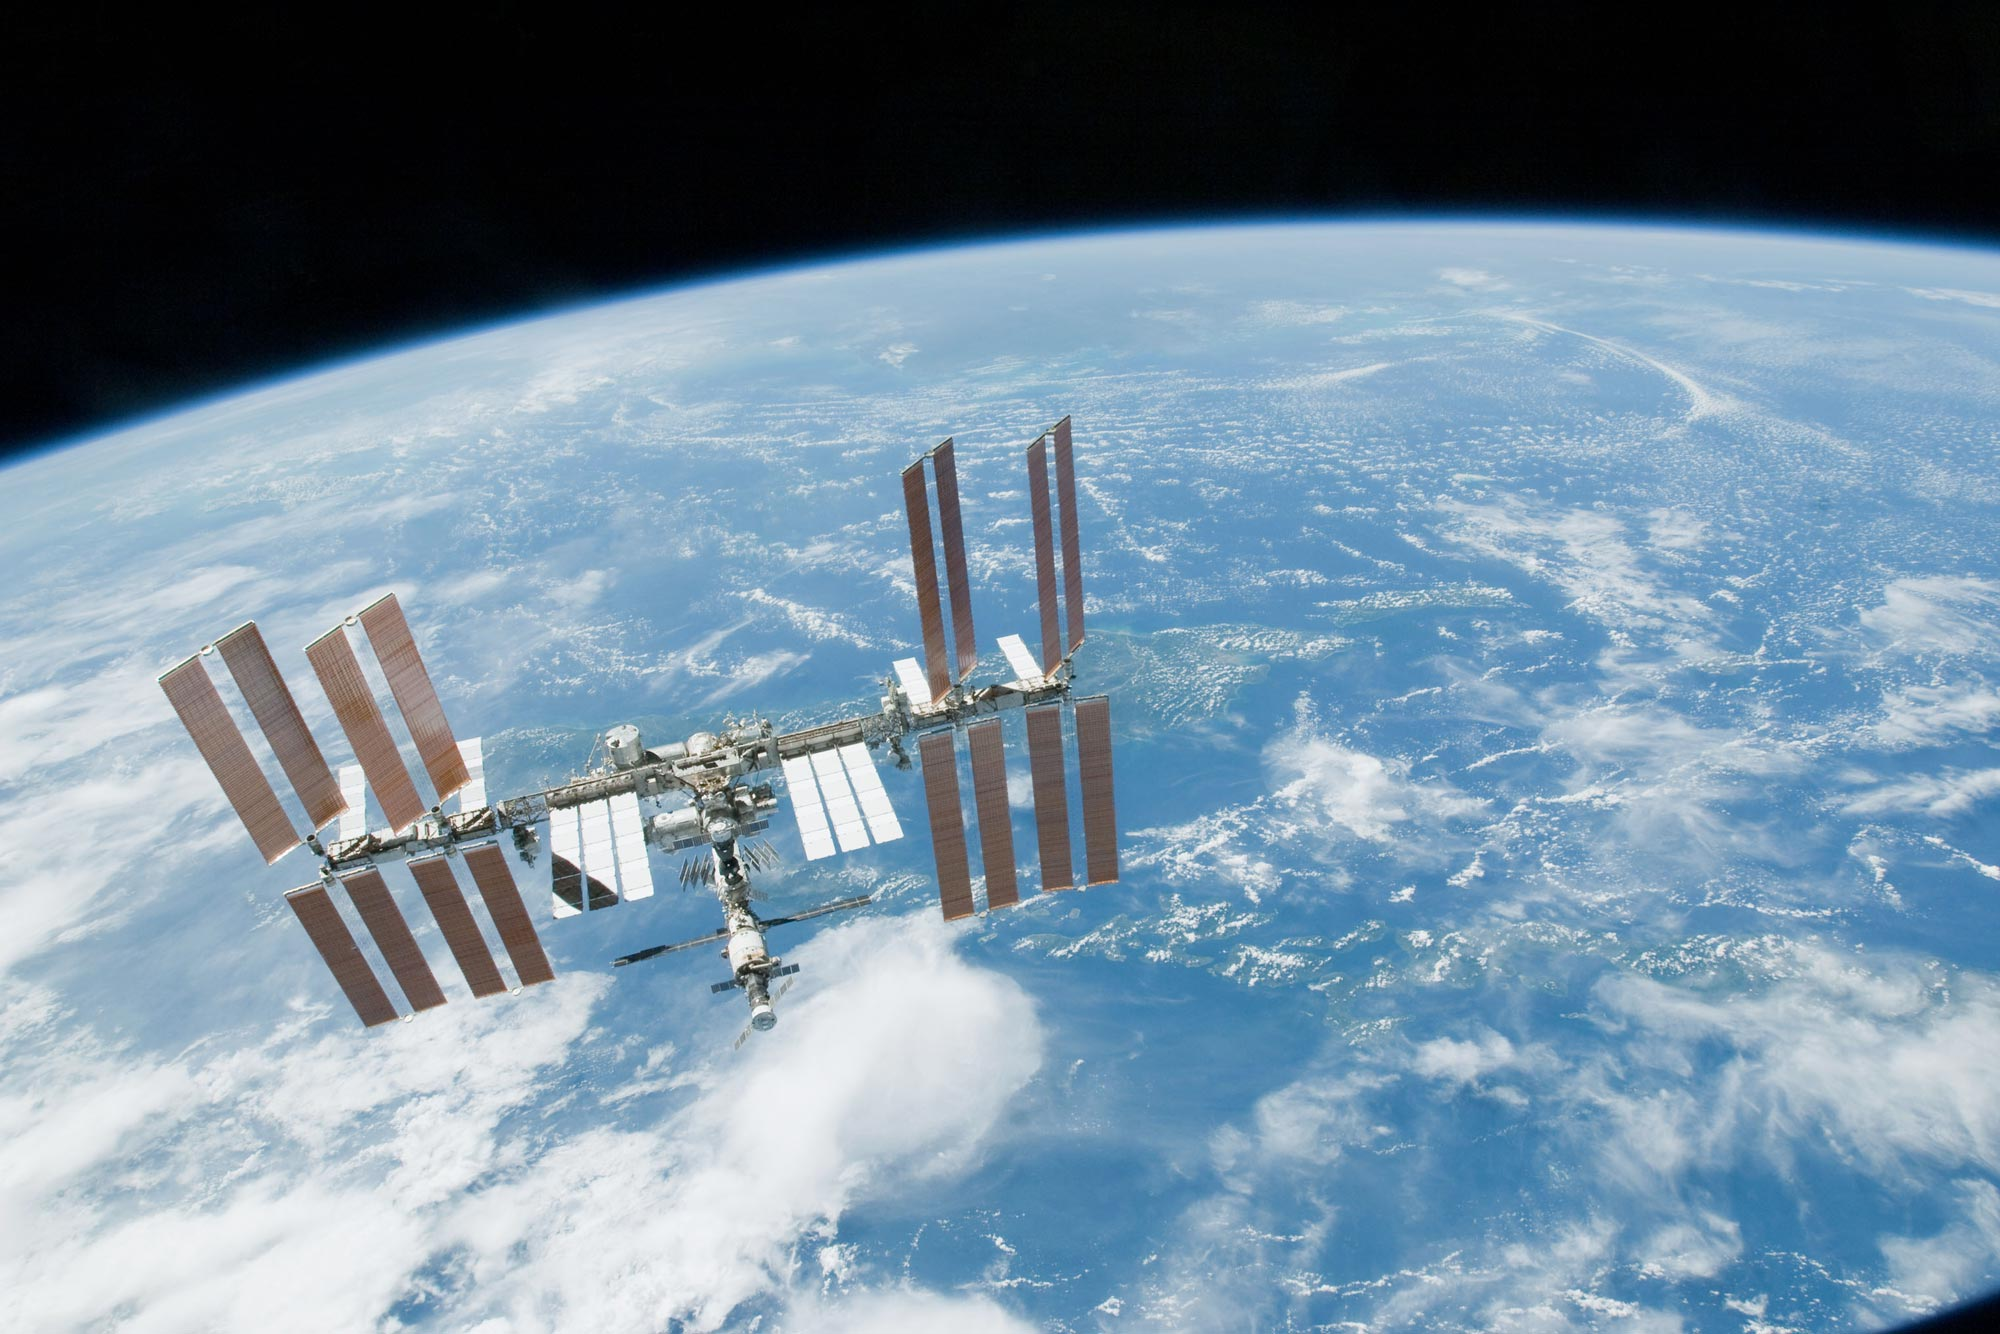 The International Space Station, with six astronauts currently aboard, will pass over Central Virginia Wednesday and Thursday evenings.